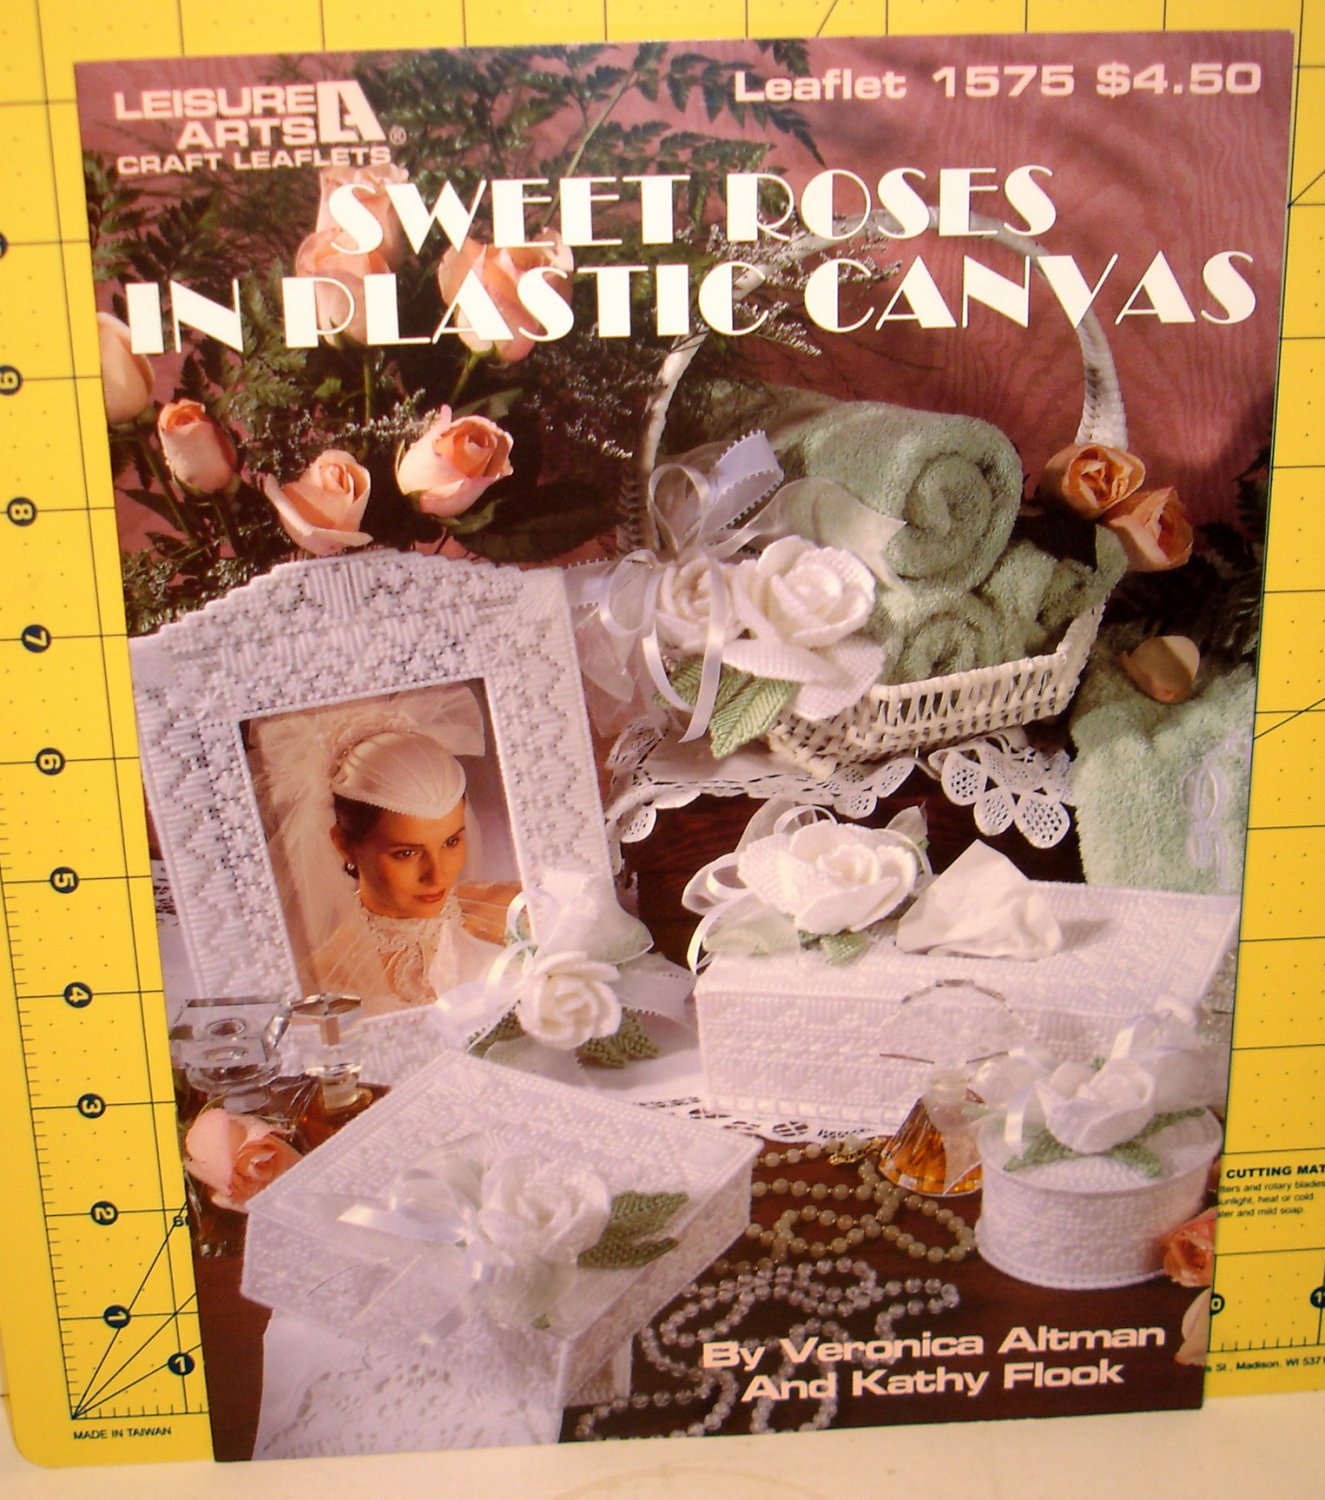 SWEET ROSES IN PLASTIC CANVAS-1994--NO. 1575 LEAFLET-8 PAGES